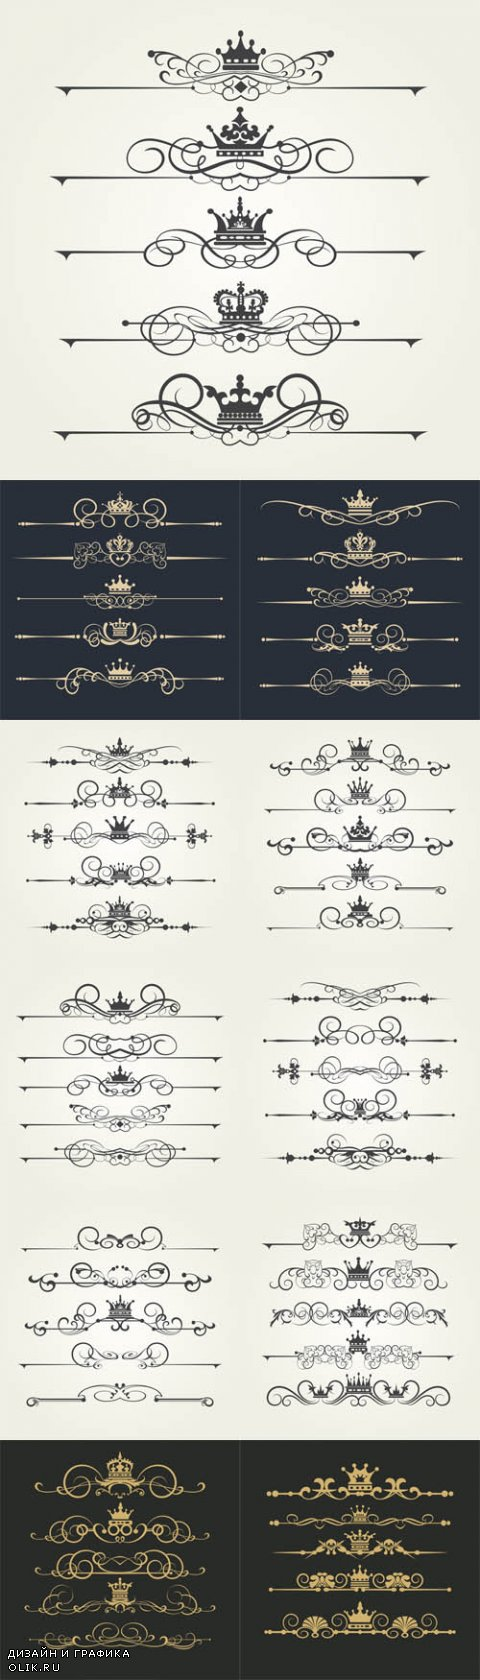 Vector Victorian Scrolls and Crown. Decorative Elements